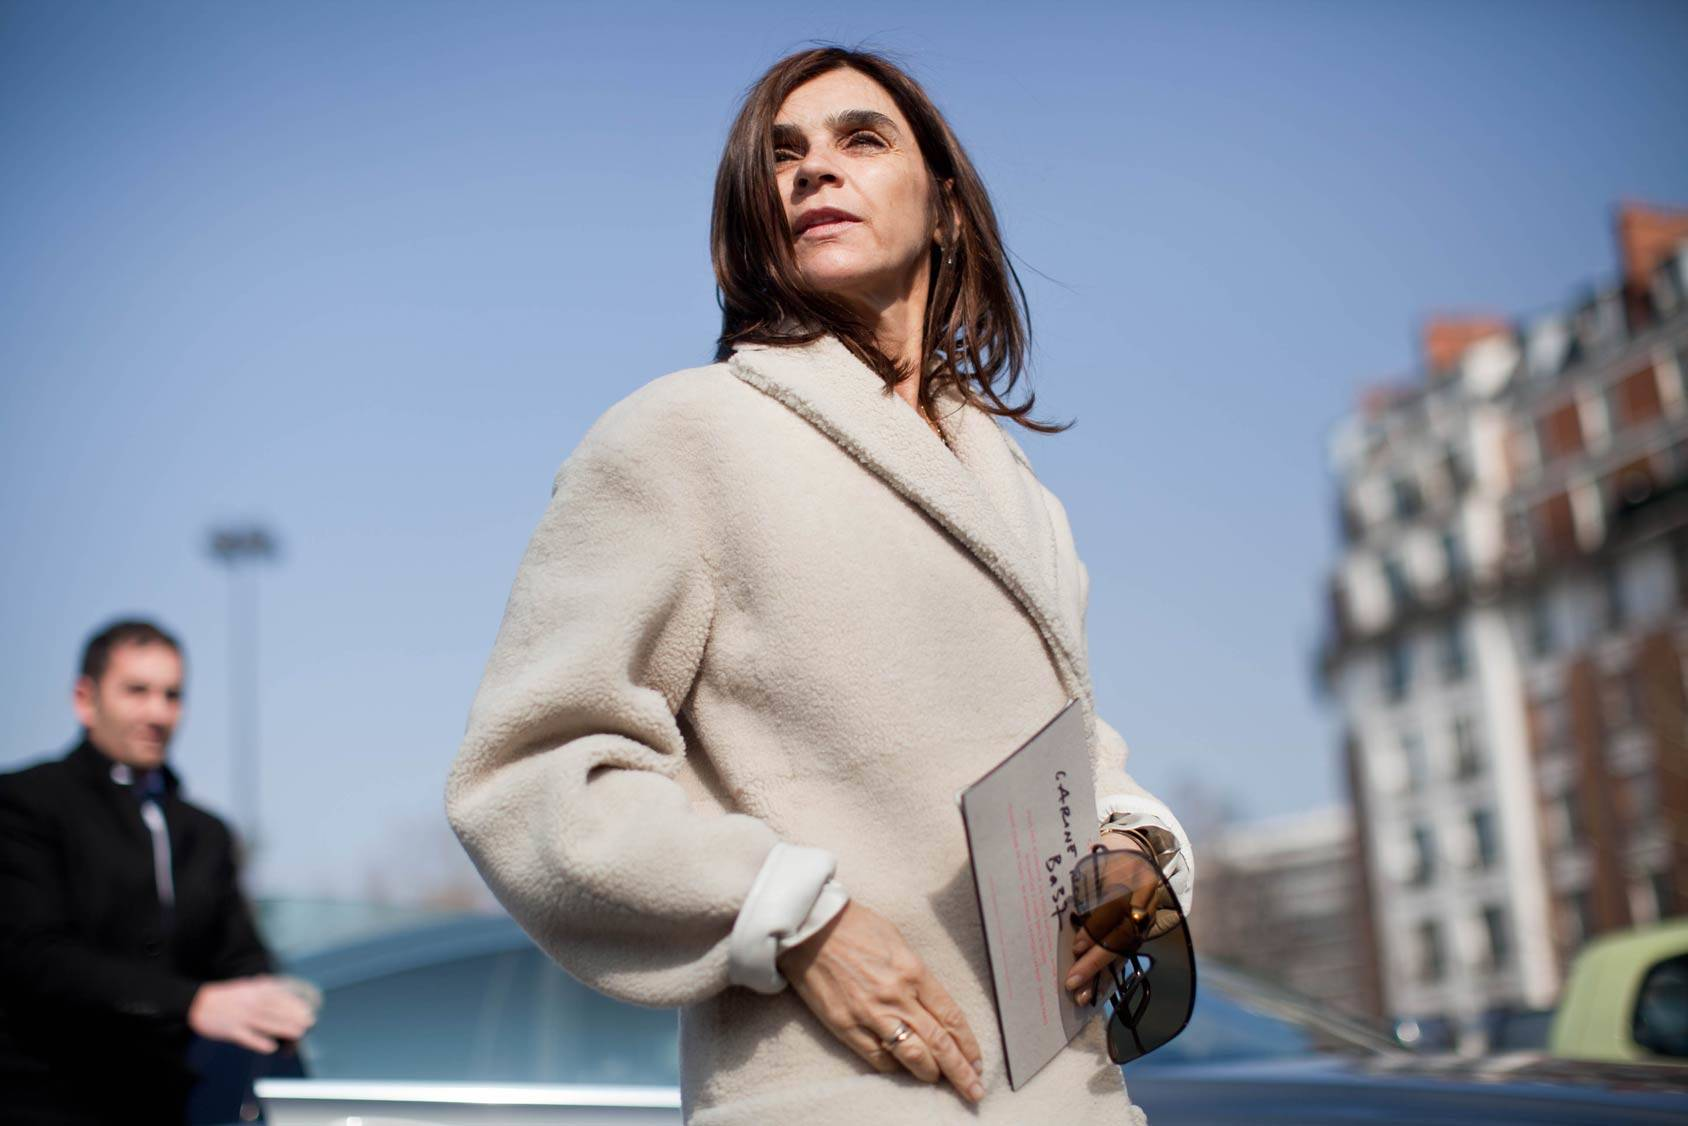 Carine Roitfeld, 59, All Over Press.